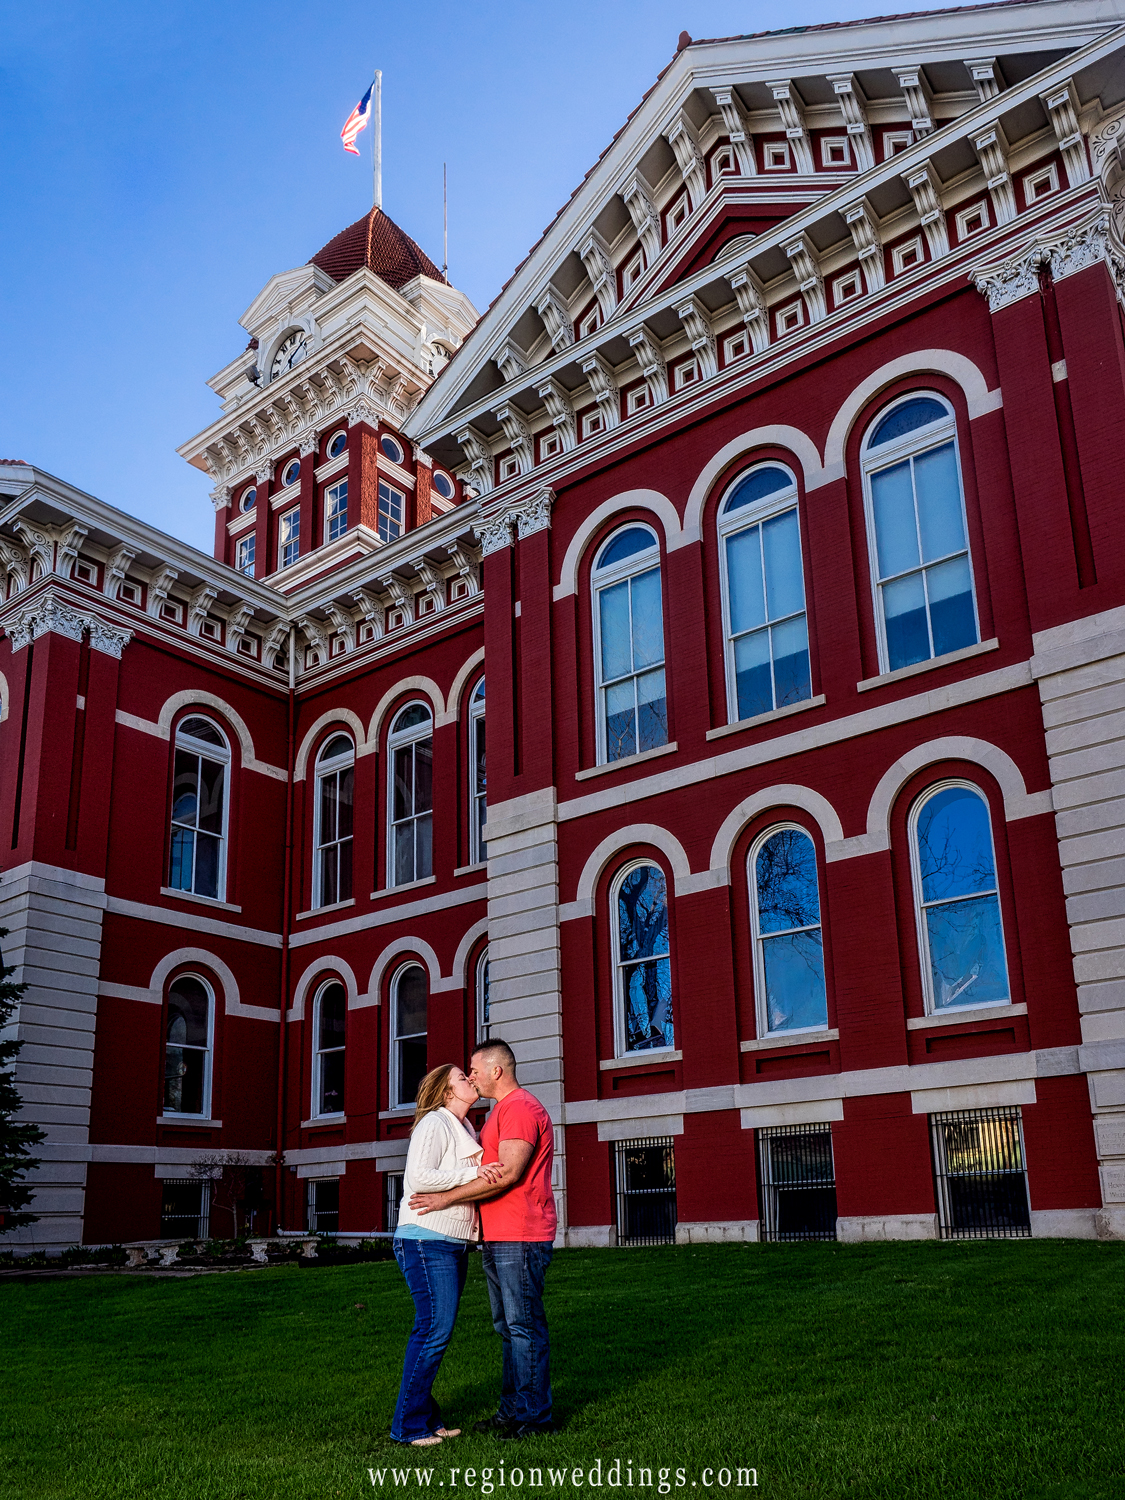 Kissing in front of the Old Courthouse in Crown Point.